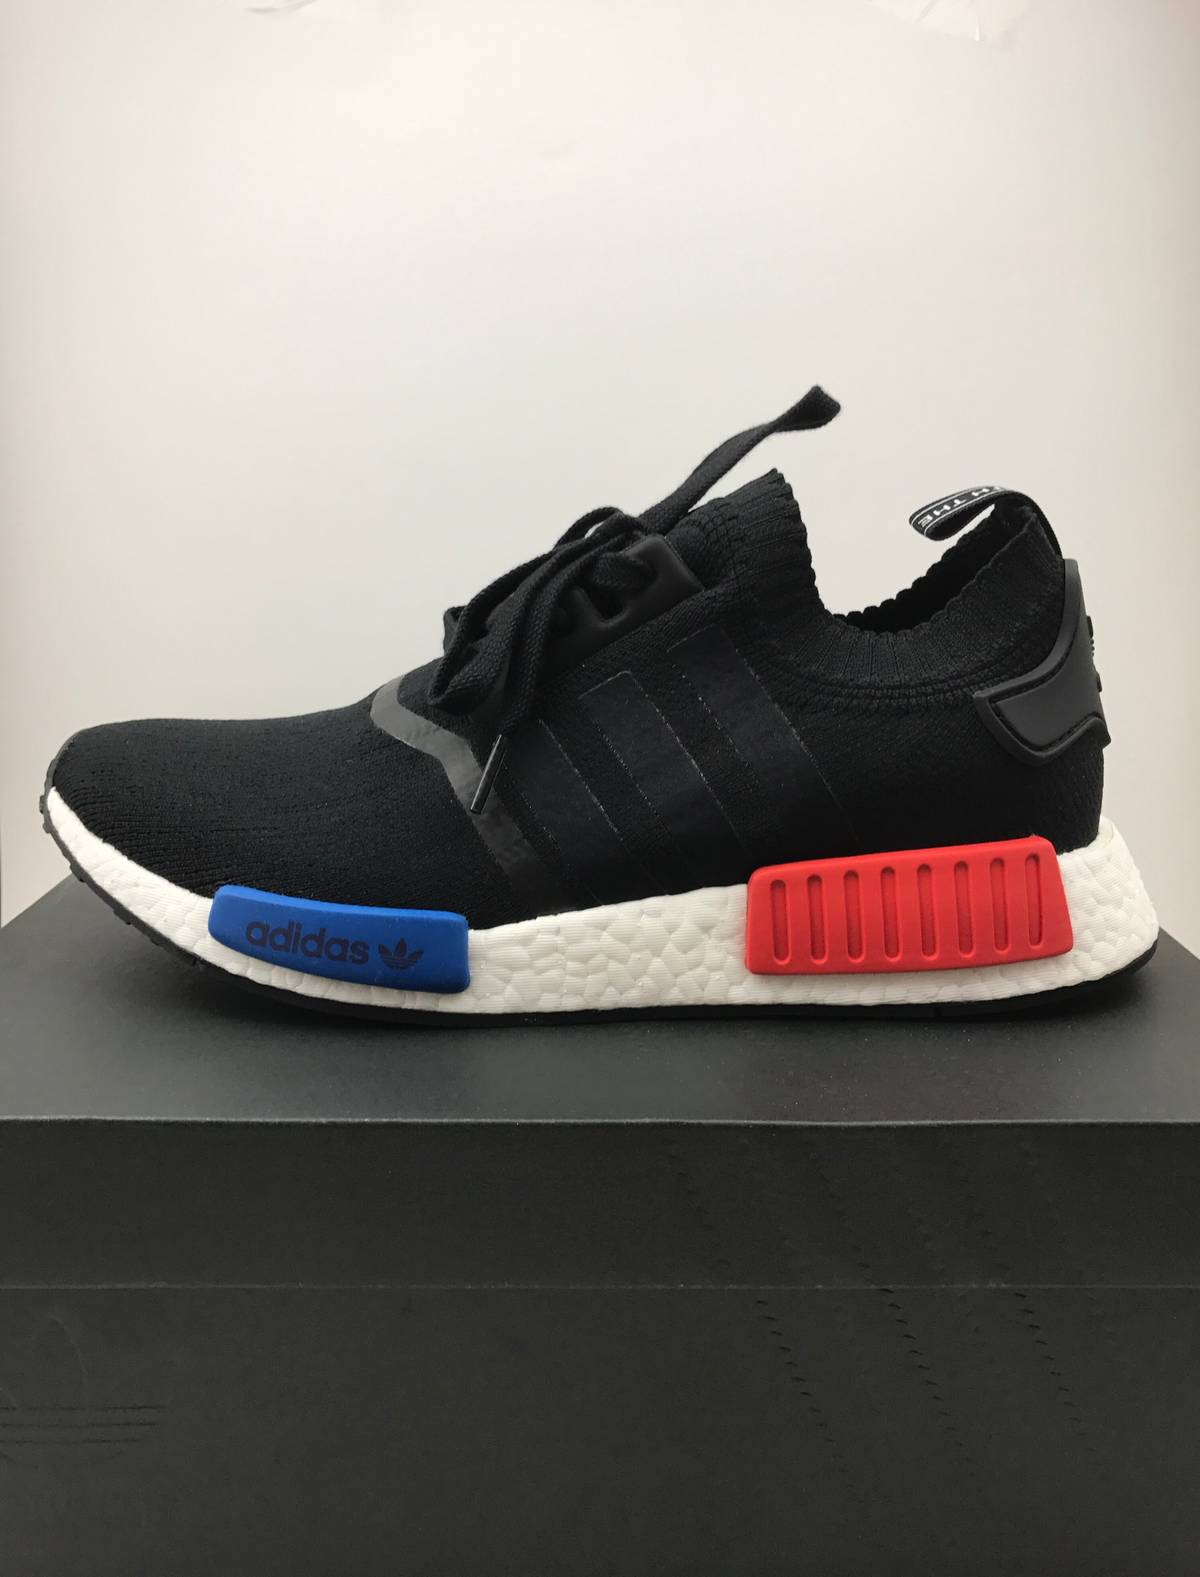 100 Authentic adidas NMD R1 PK Primeknit Black Gum By1887 Men's